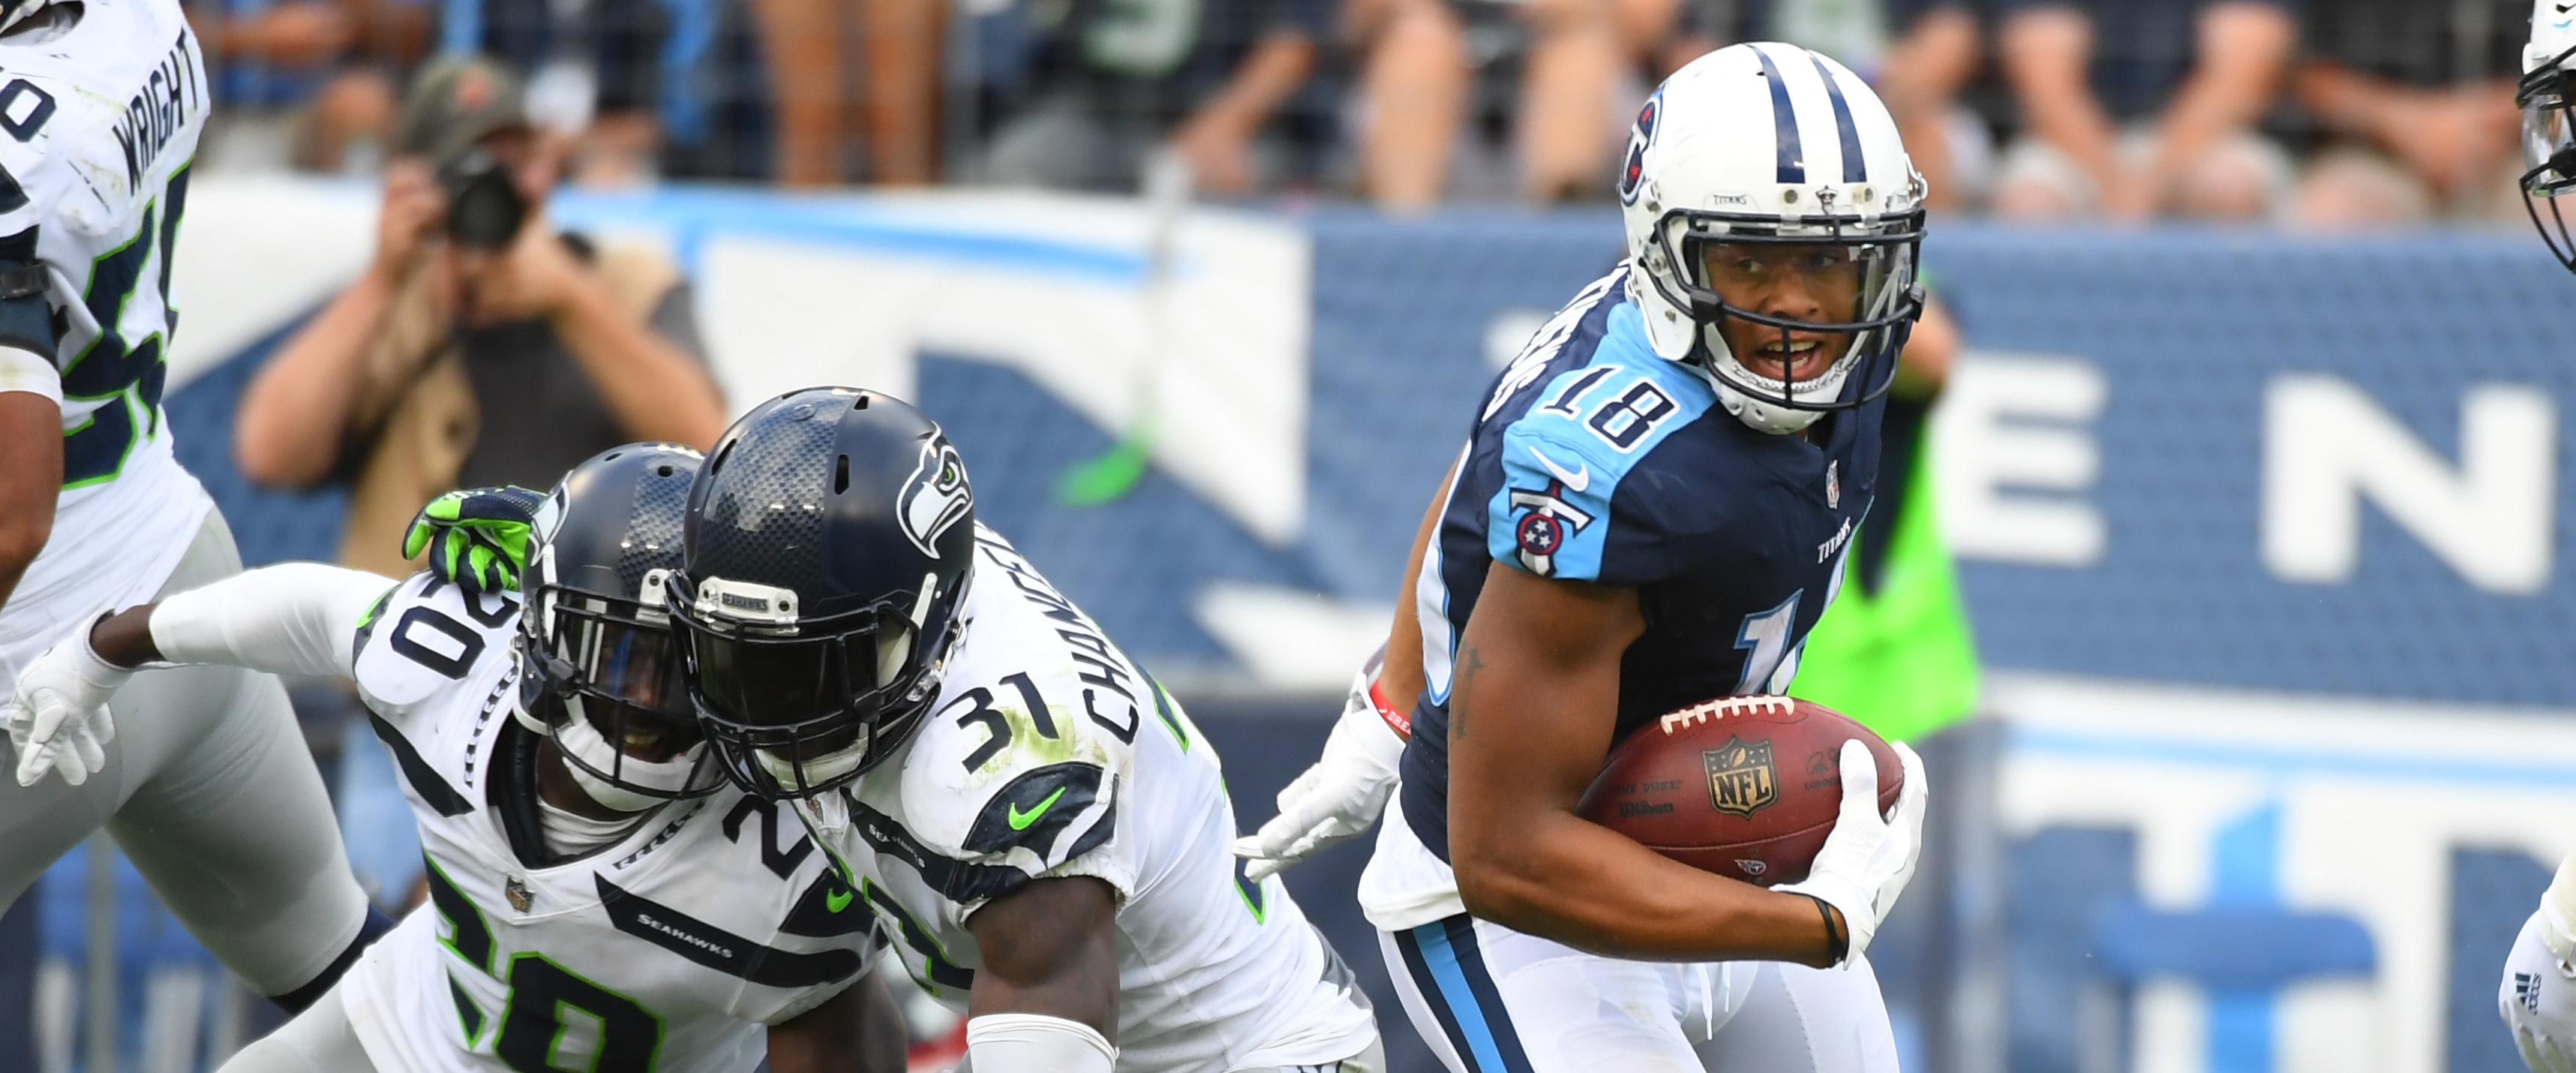 Preview: Titans travel to Seattle for the first time since 2013